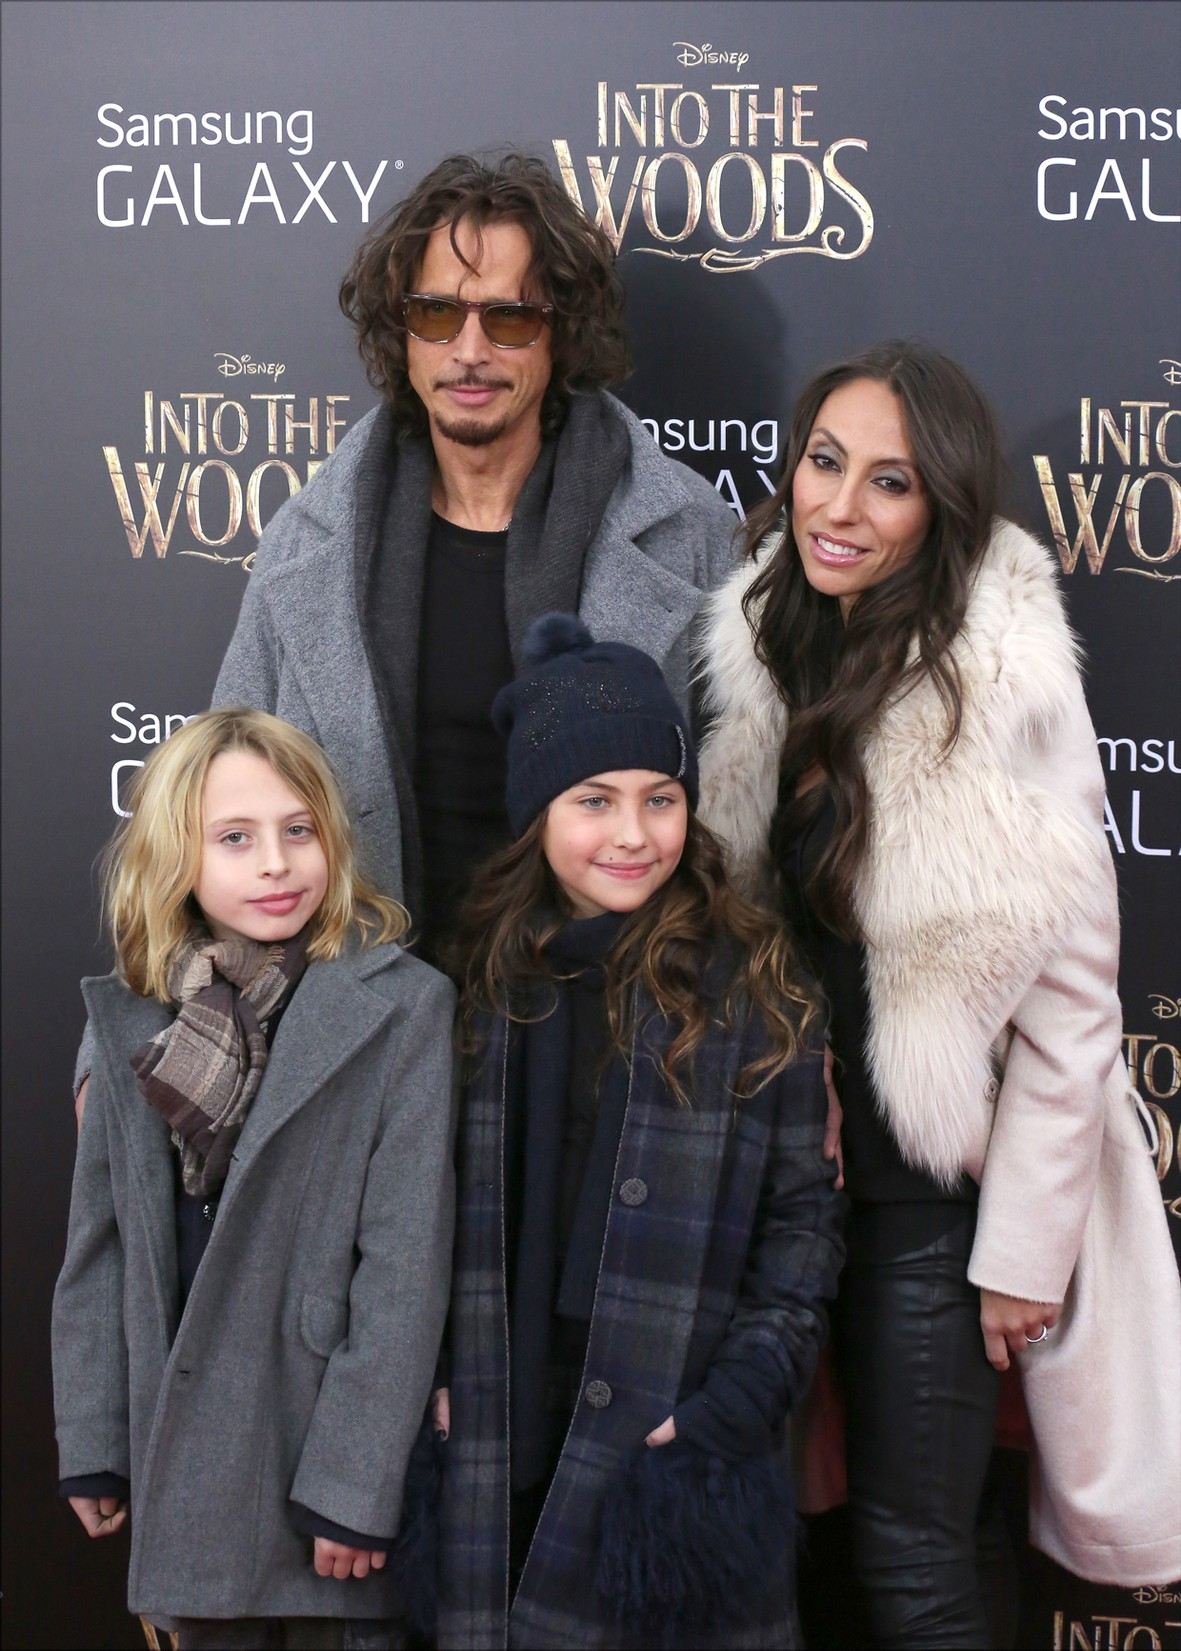 Chris Cornell and family attend the 'Into The Woods' World Premiere at Ziegfeld Theater on Dec. 8, 2014 in New York City.